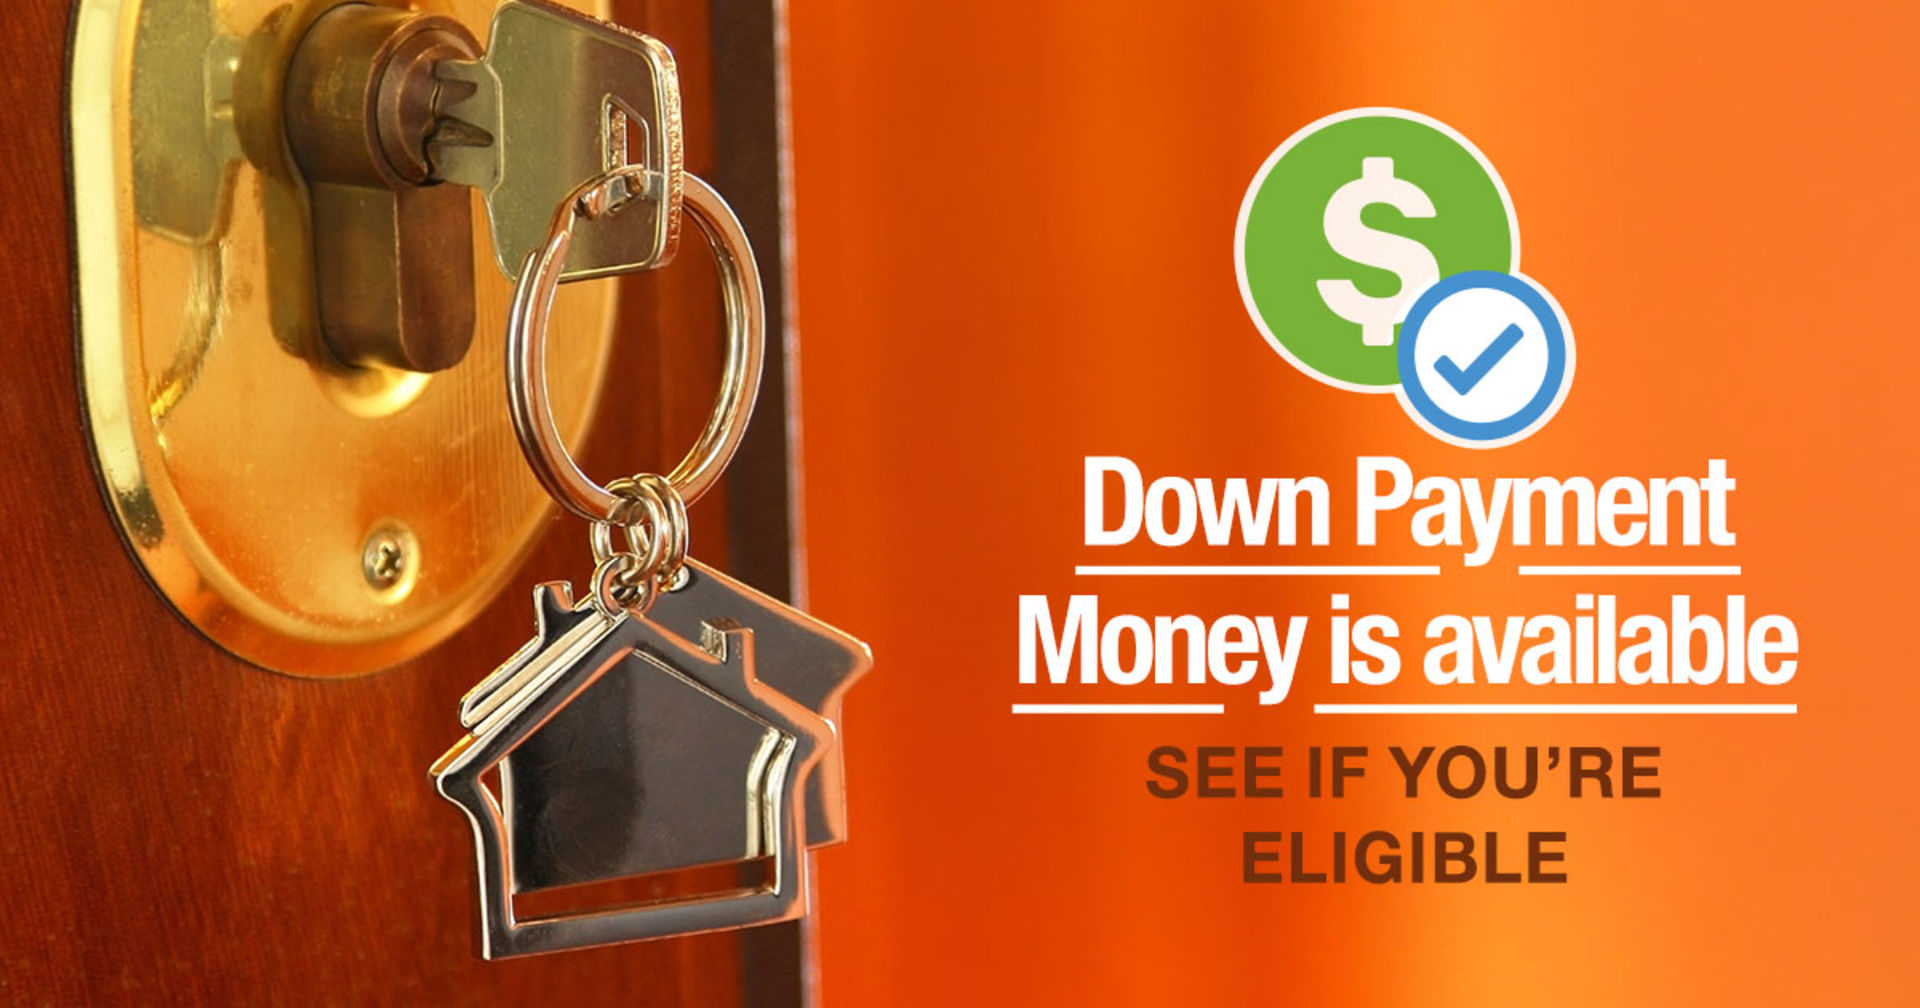 Do You Need Help with a Down Payment?